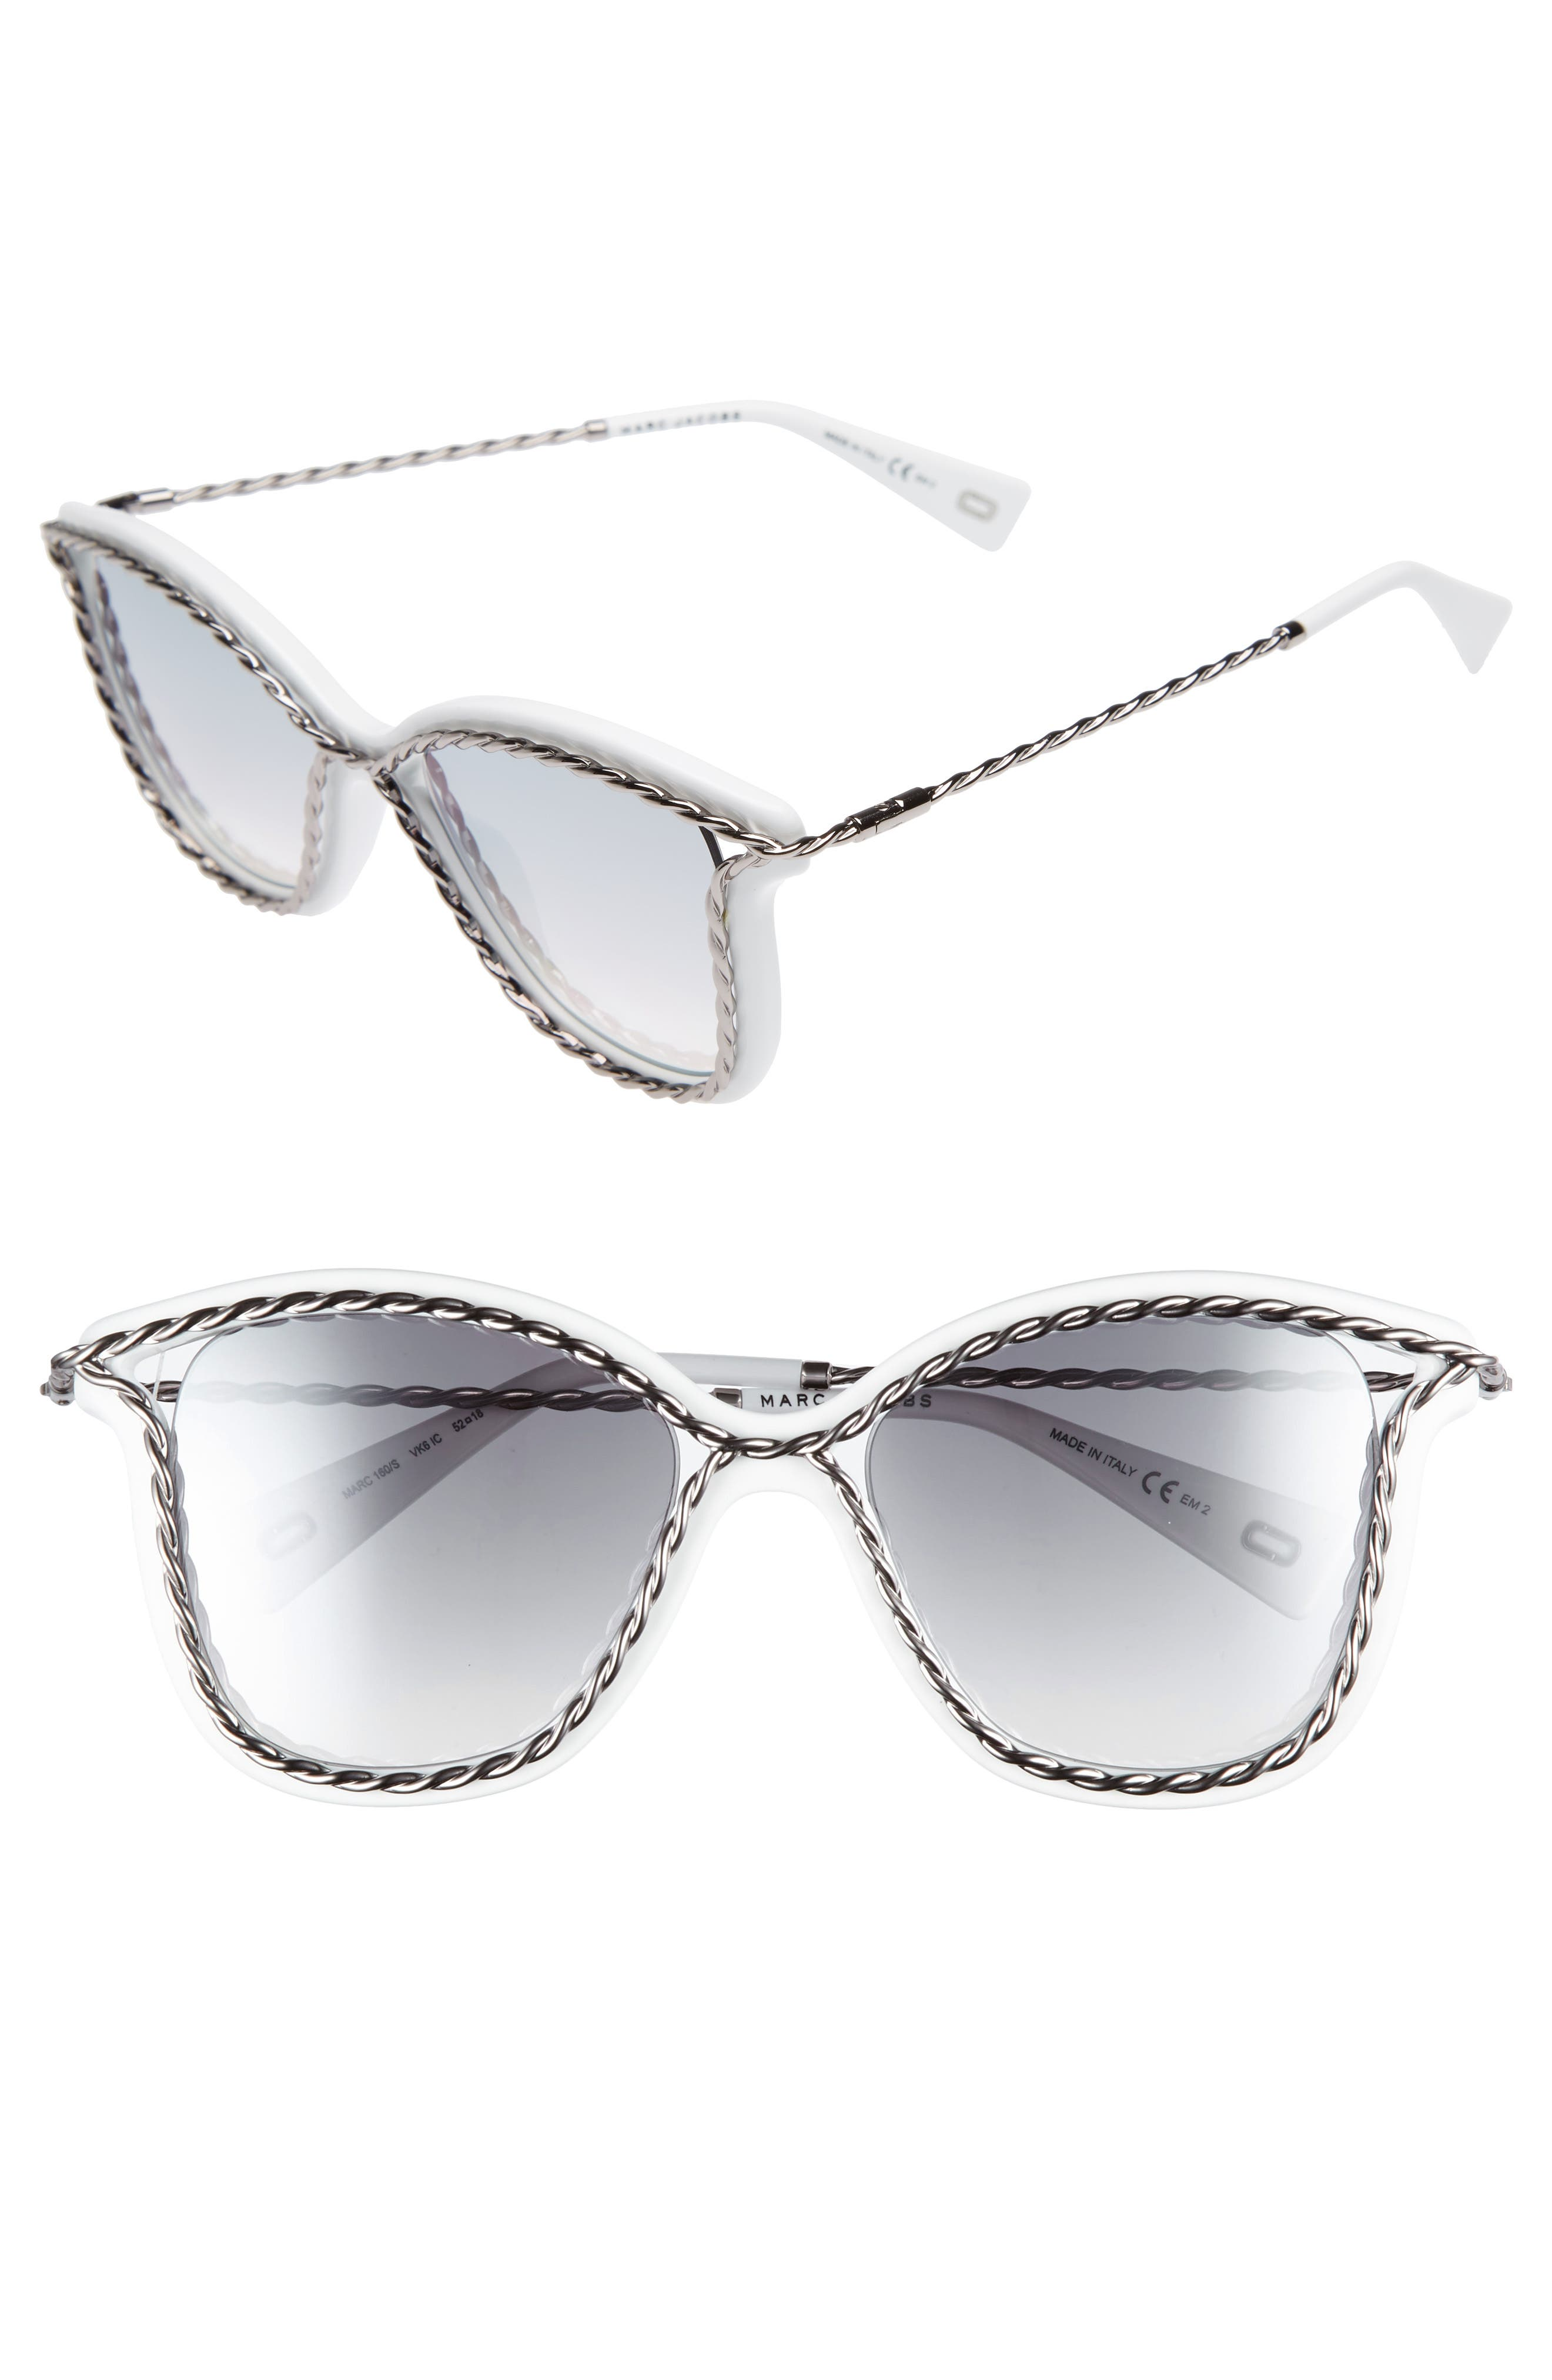 Alternate Image 1 Selected - MARC JACOBS 52mm Cat Eye Sunglasses